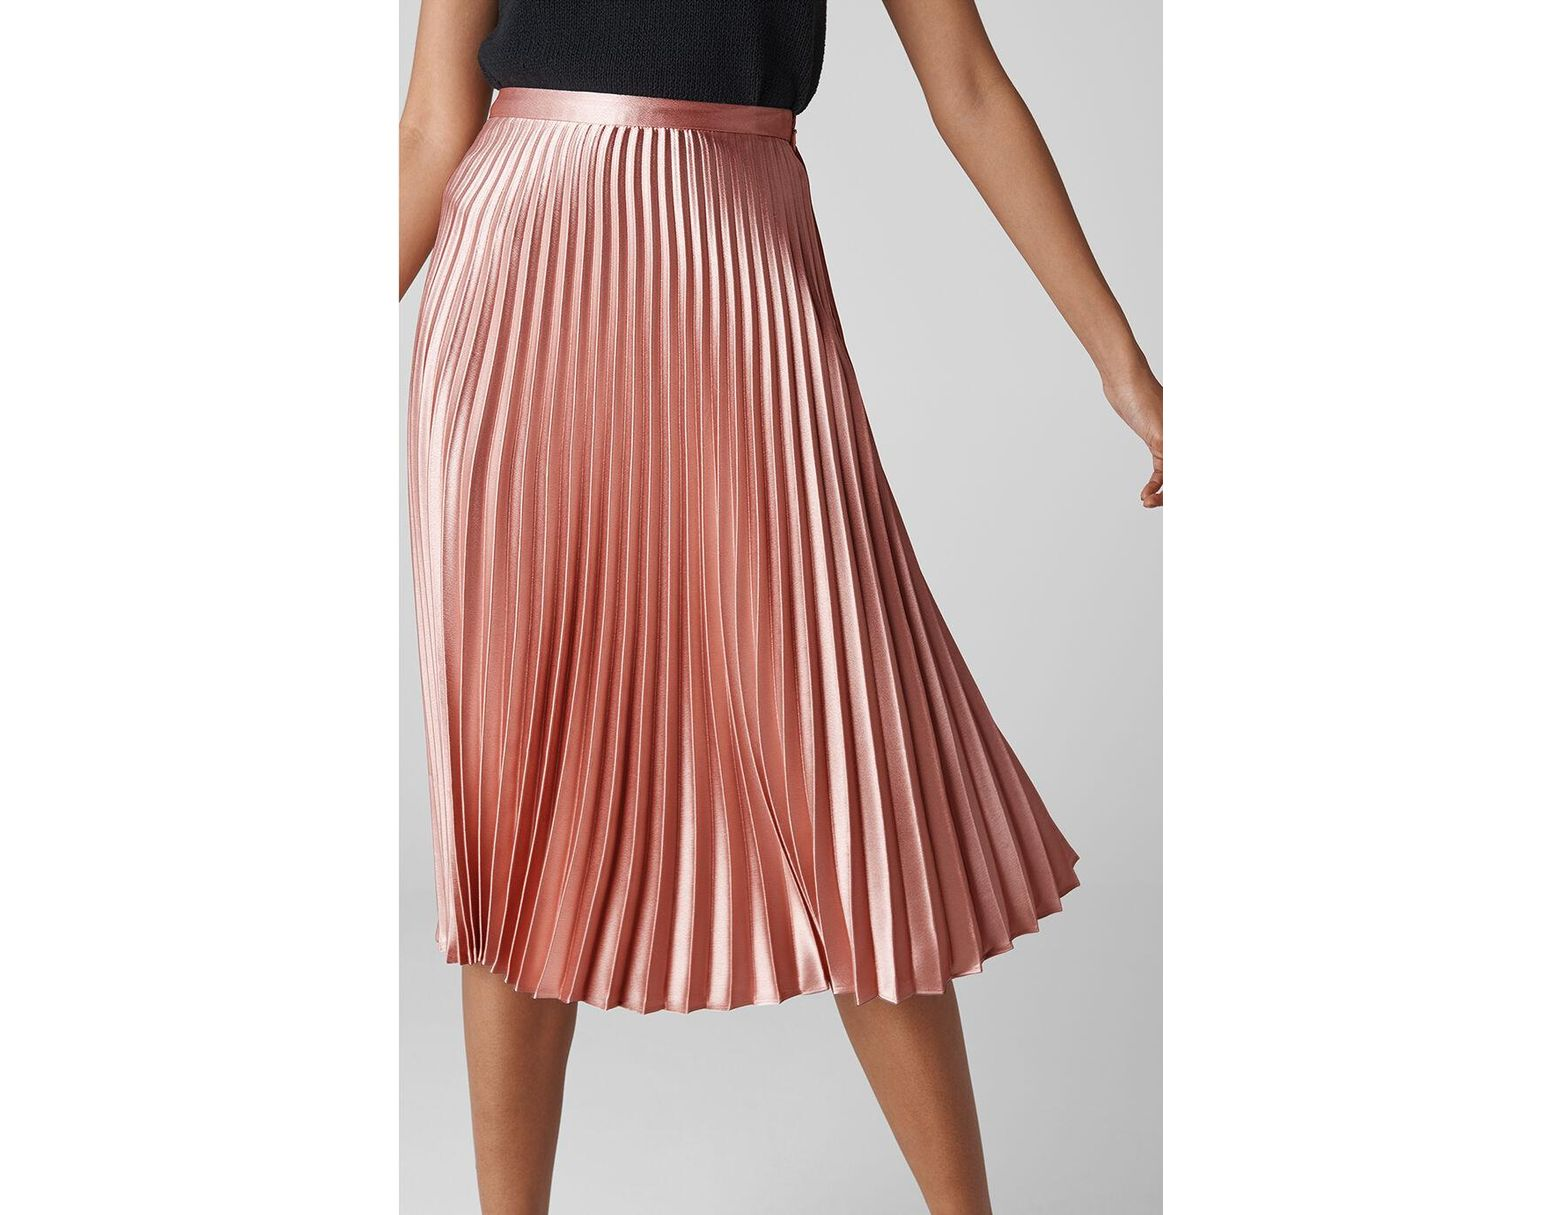 3928b78be9 Whistles Satin Pleated Skirt in Pink - Lyst